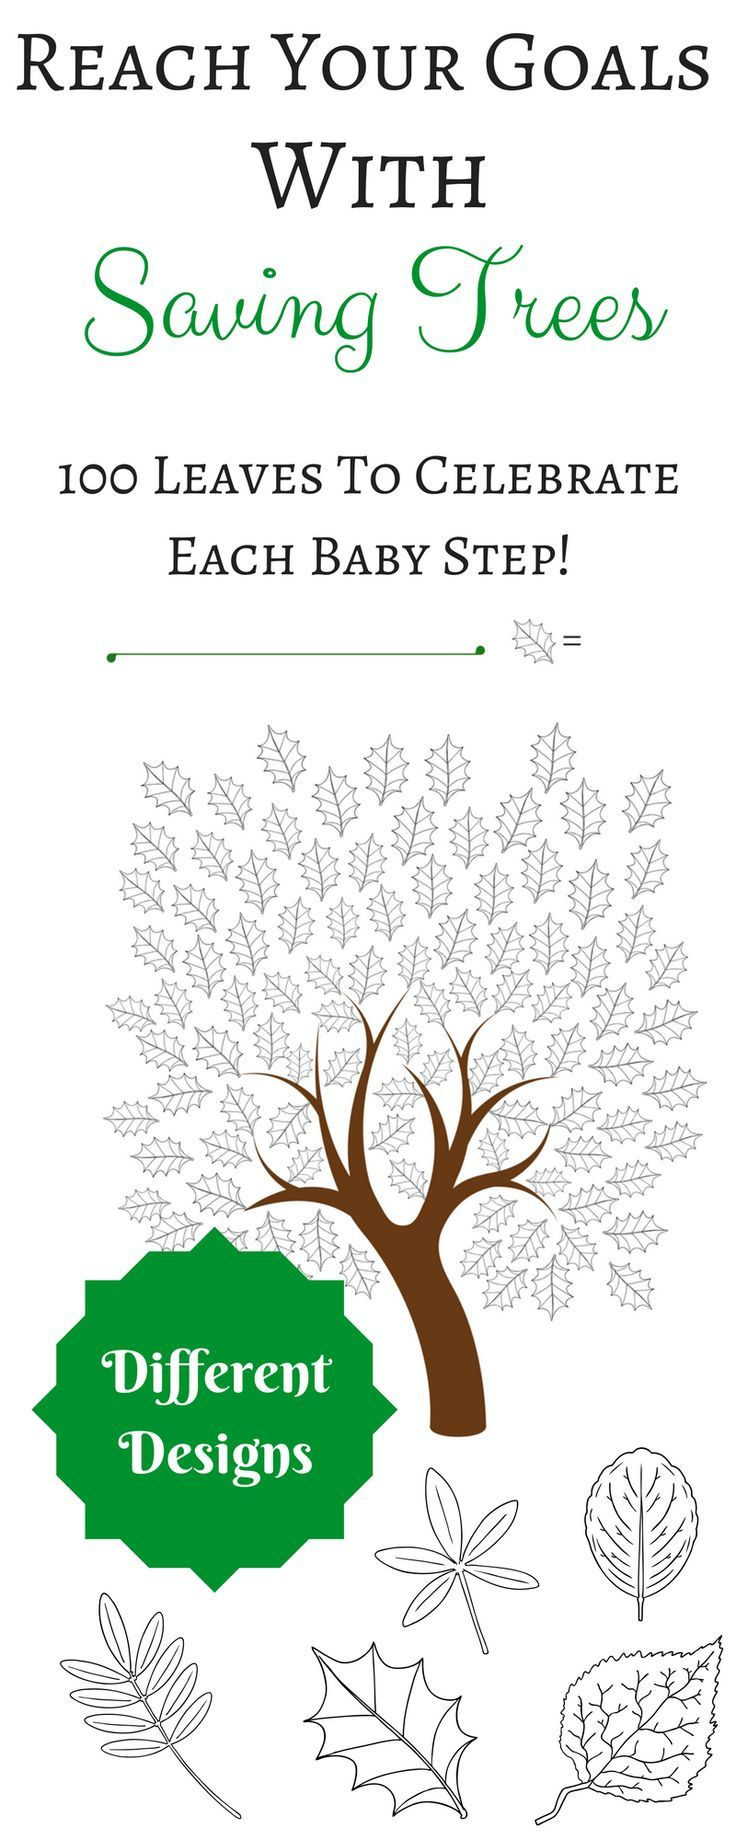 Keep the steam when you're saving for an important goal with this cute saving tree bundle! Featuring rowan, alder, holly, birch and chestnut.  #colouring #savingtrees #goals #tracking #charts